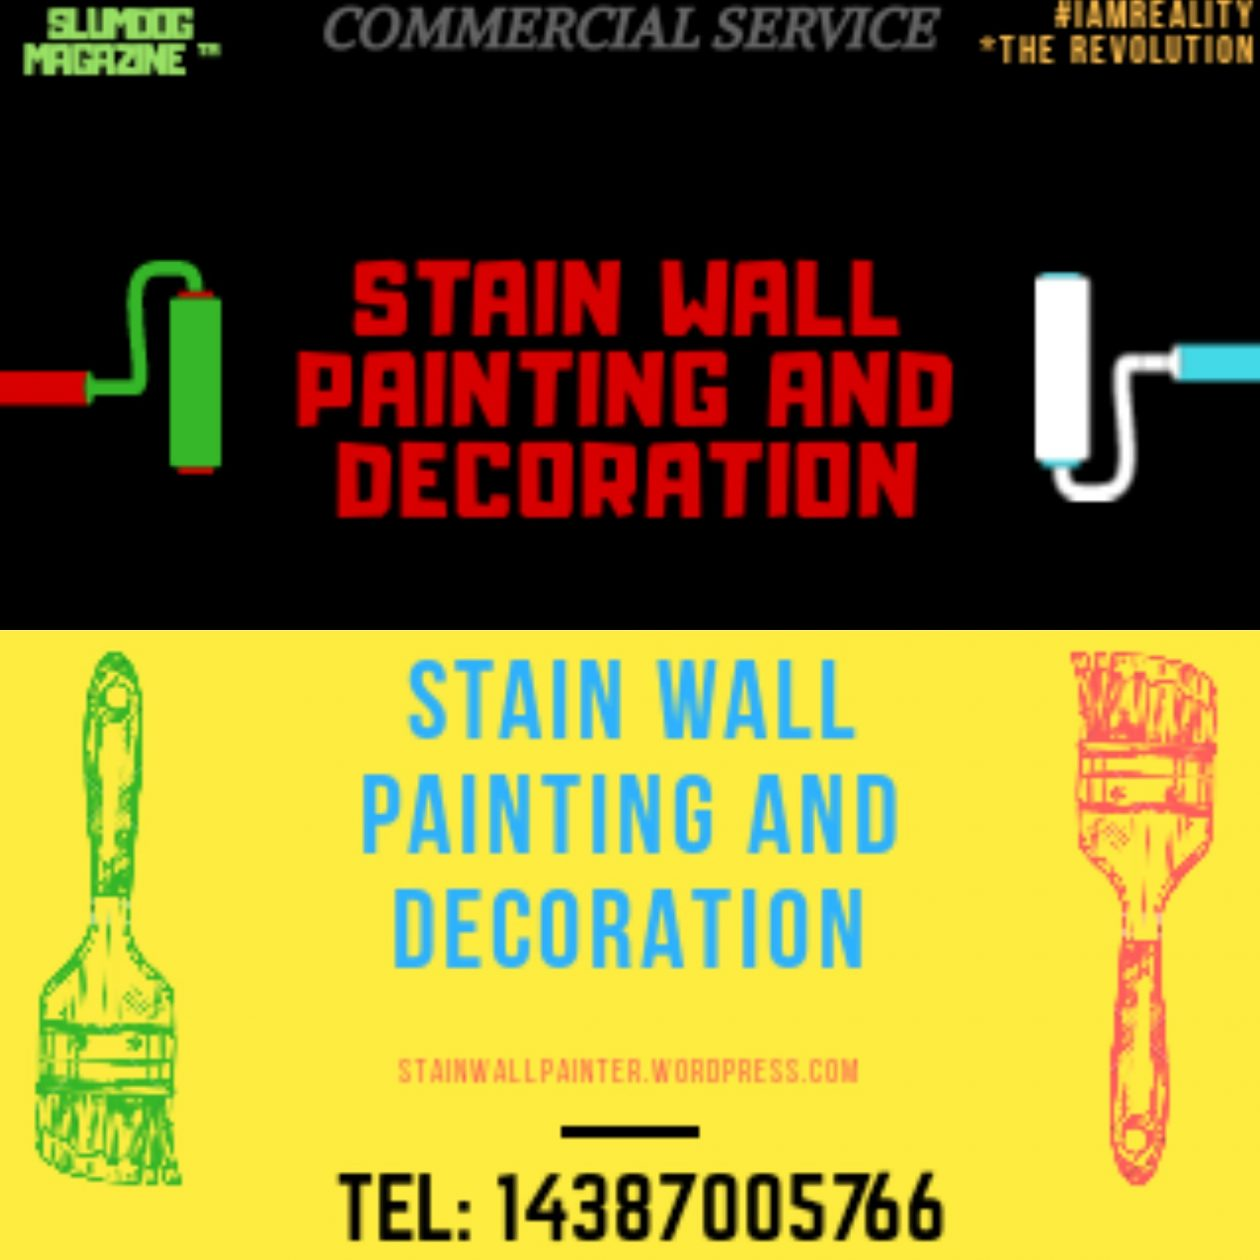 STAIN WALL PAINTING AND DECORATION